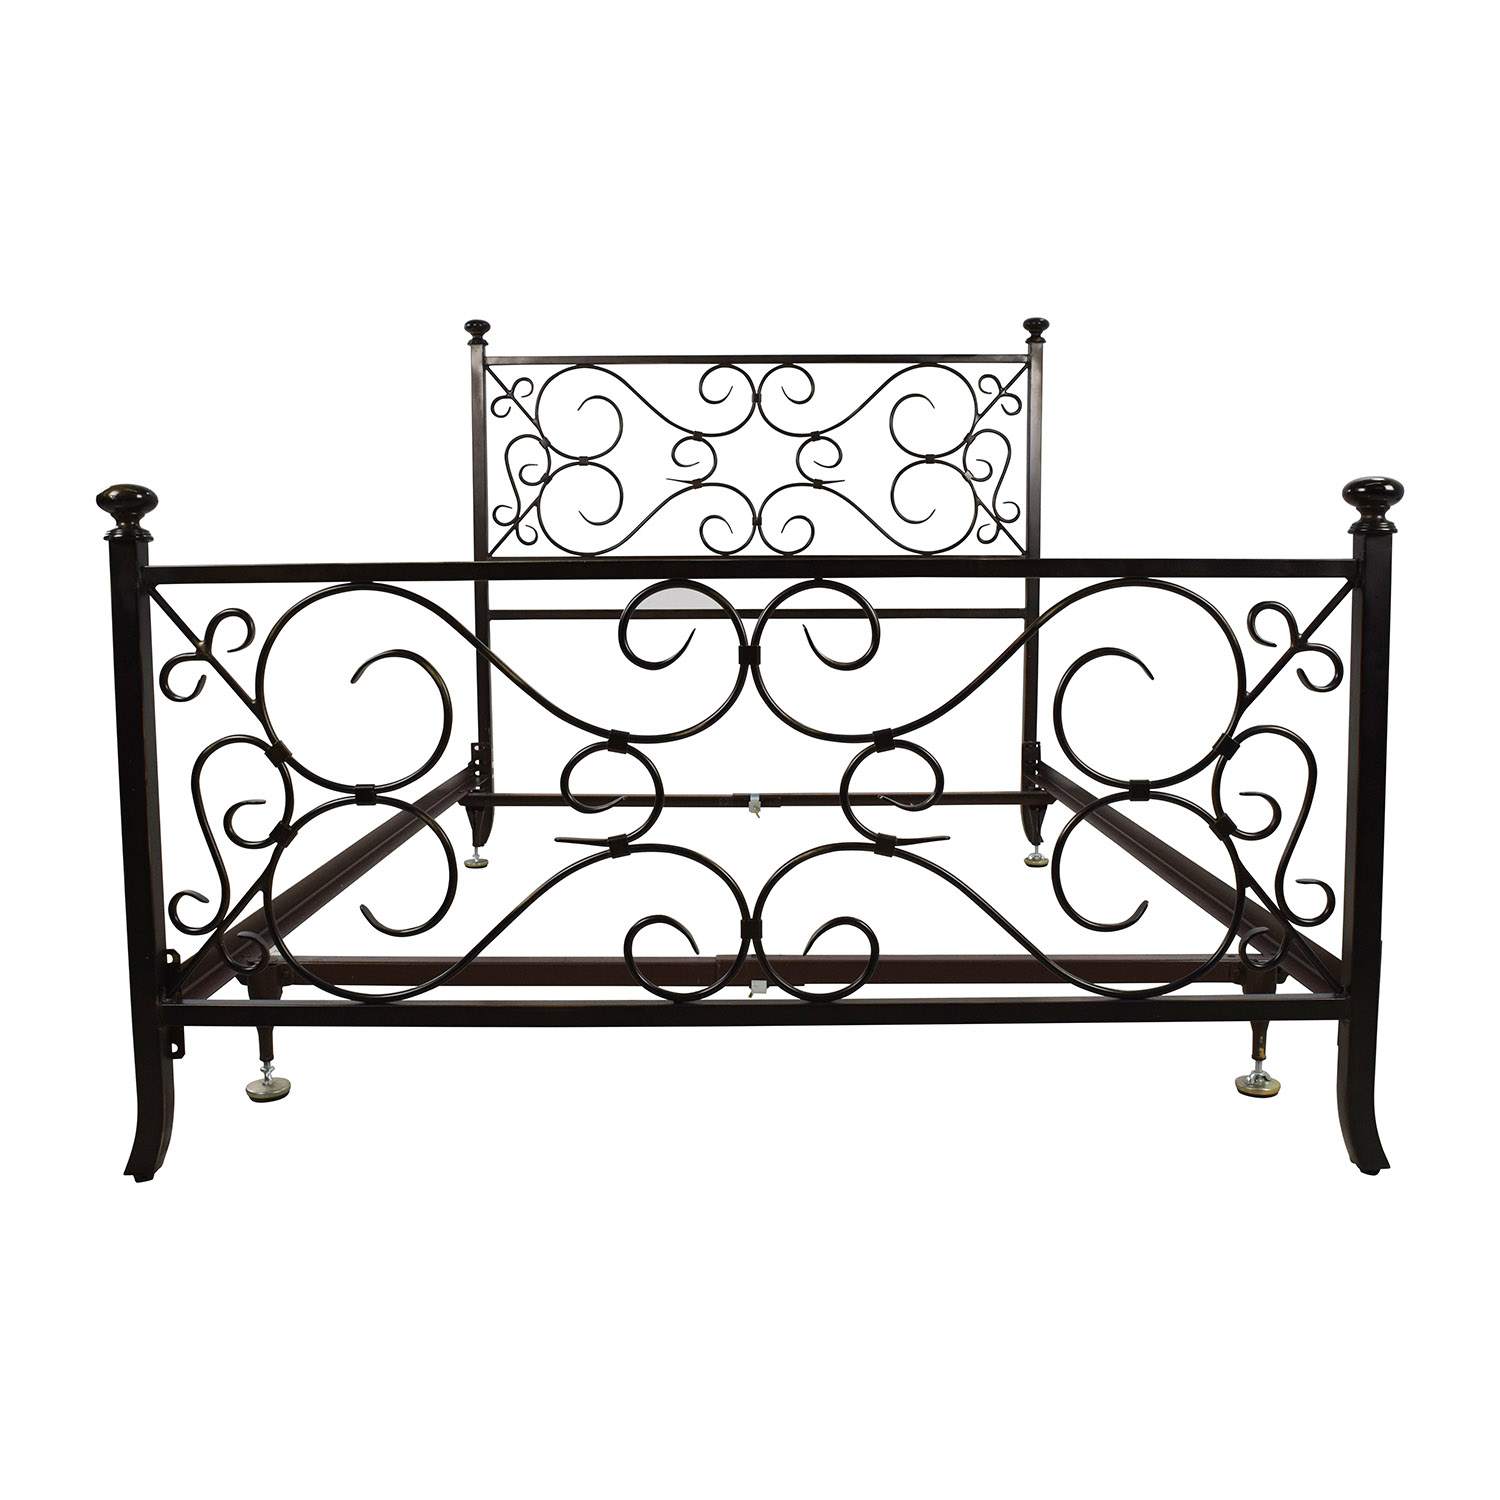 shop Black Scrolled Metal Bed Frame online